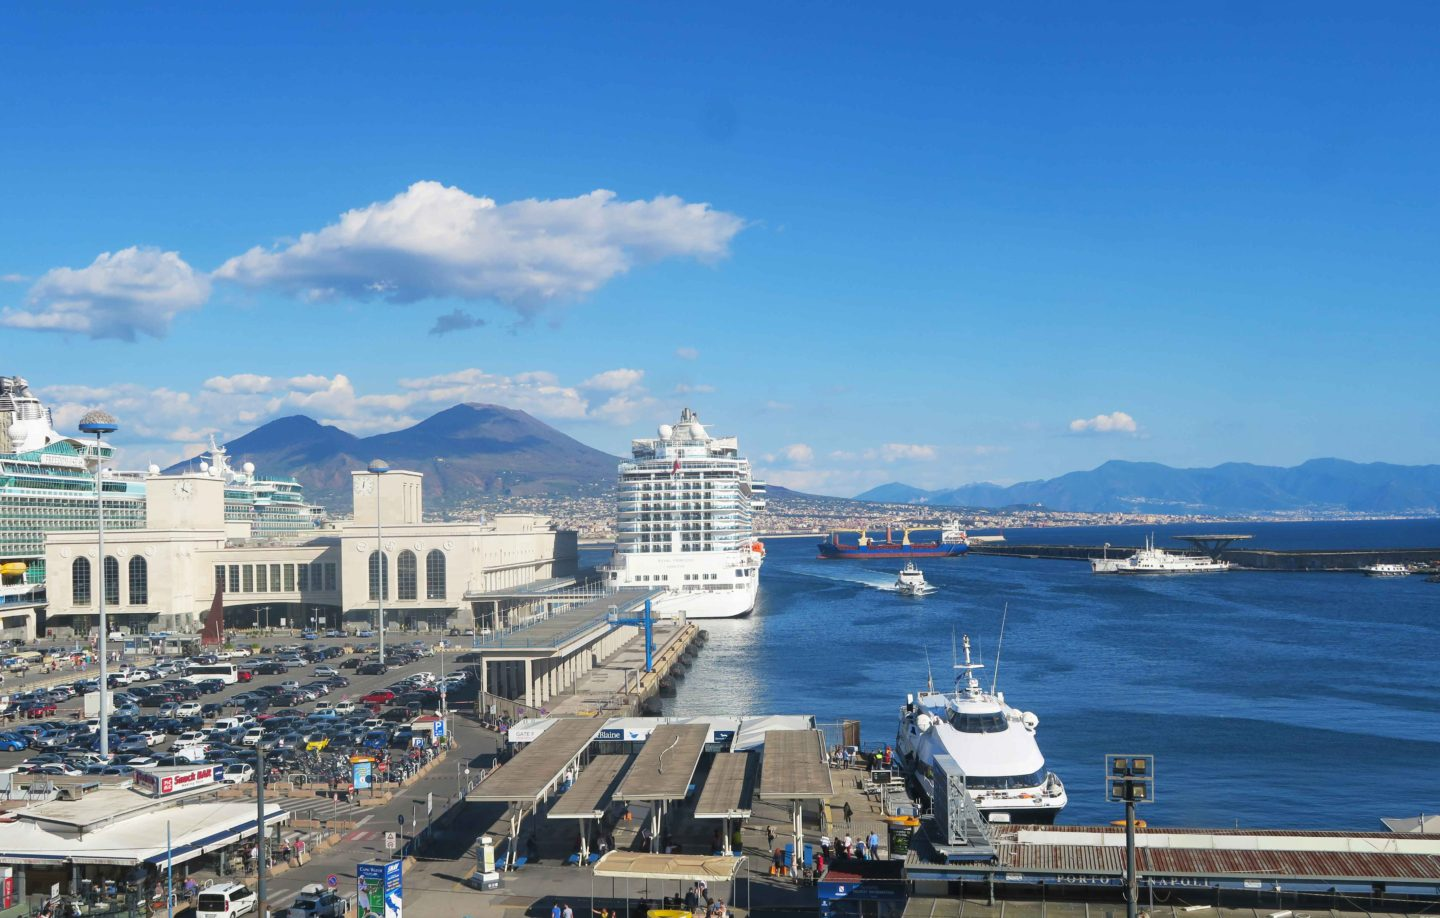 castel nuovo cruise ship in harbour at naples